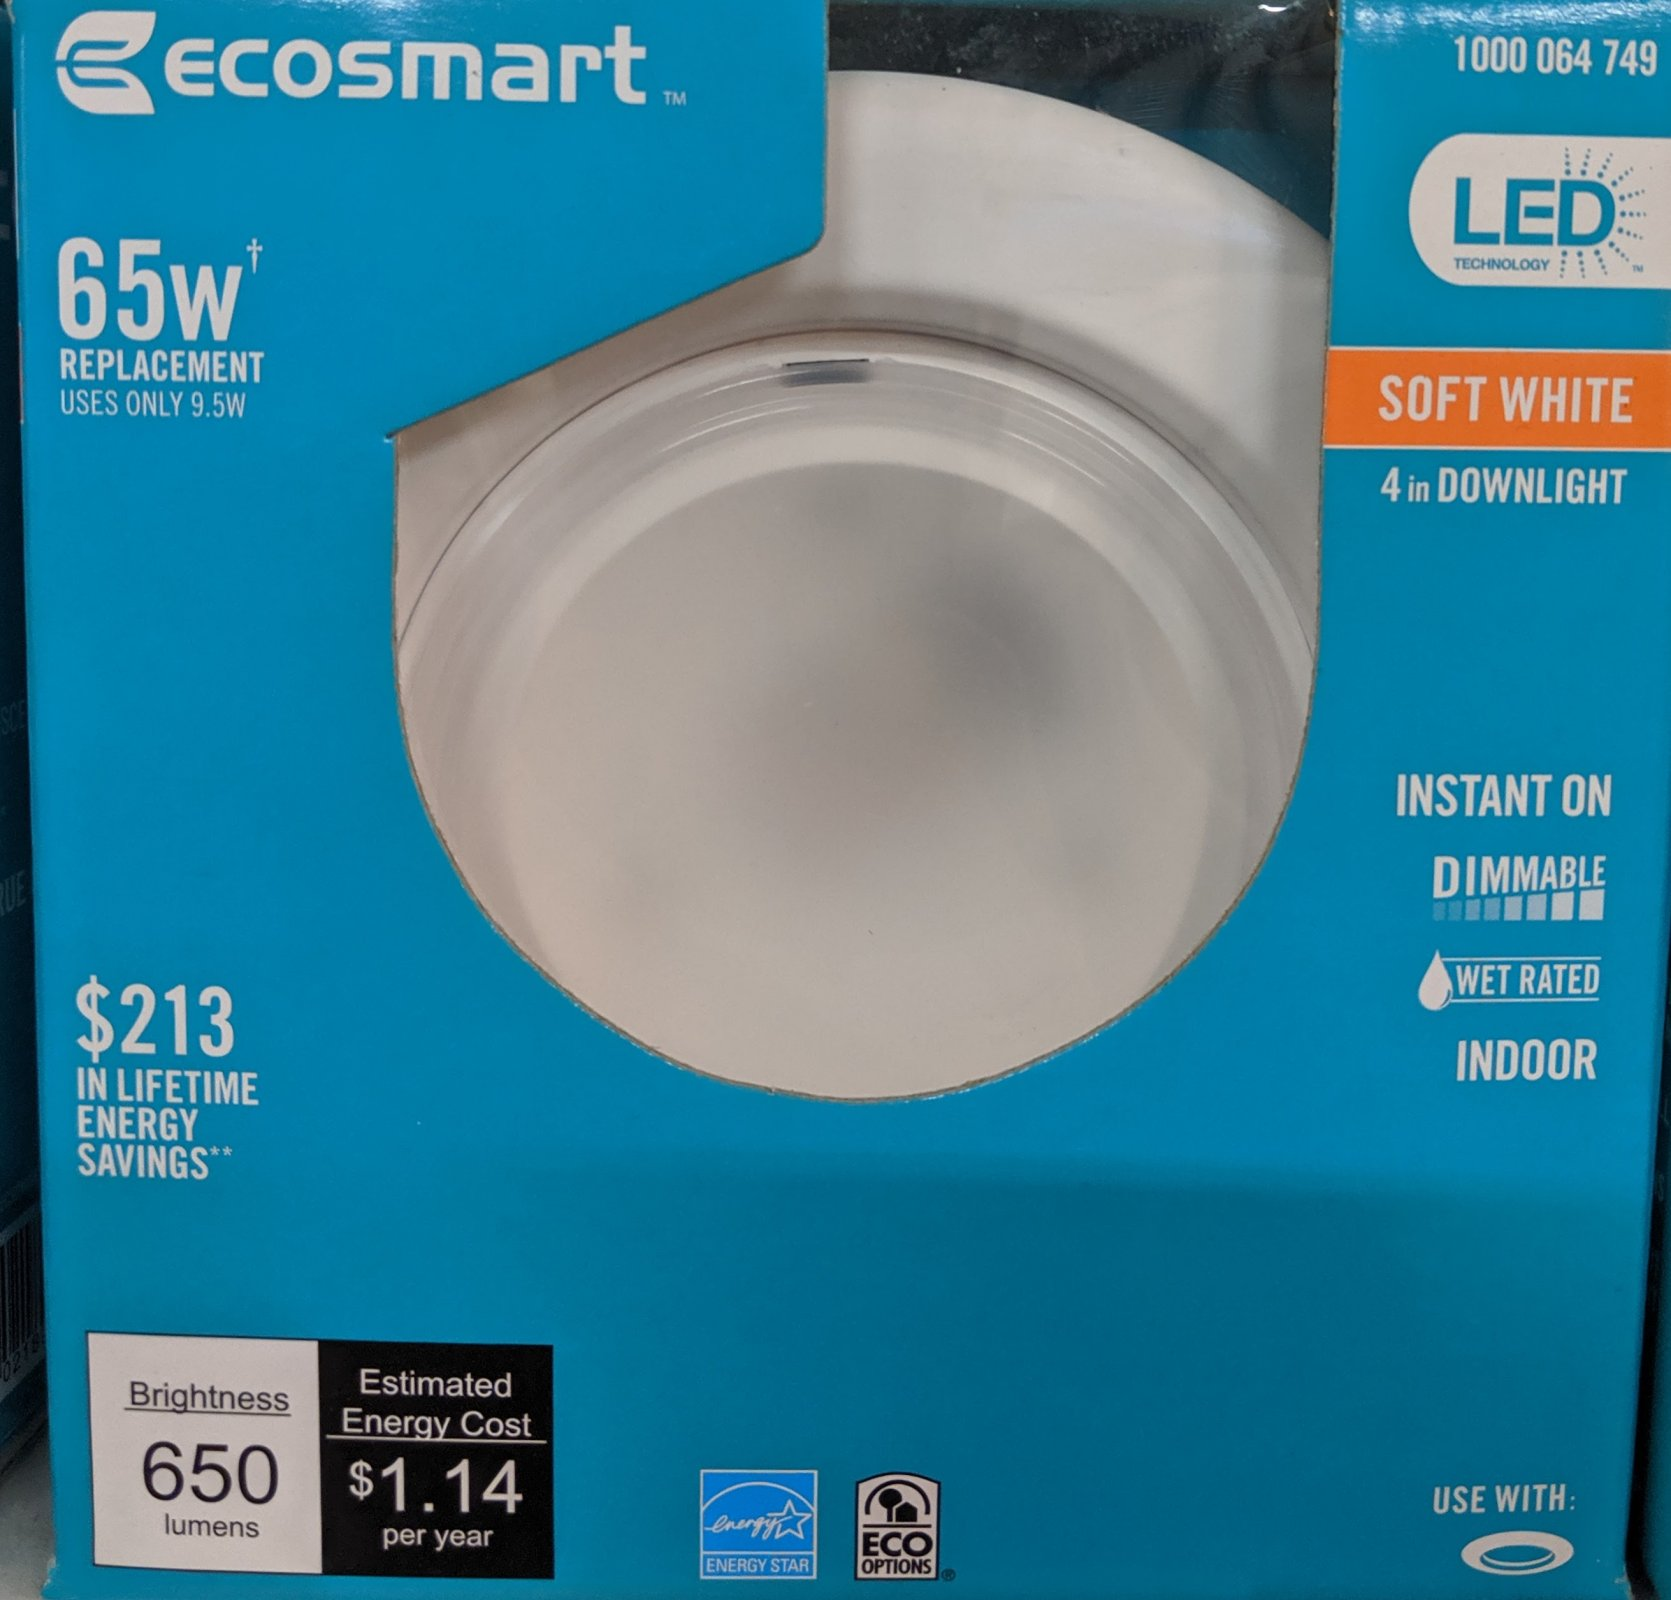 Ecosmart 4 In Soft White Downlight LED 65W Equivalent Dimmable 650 lumens